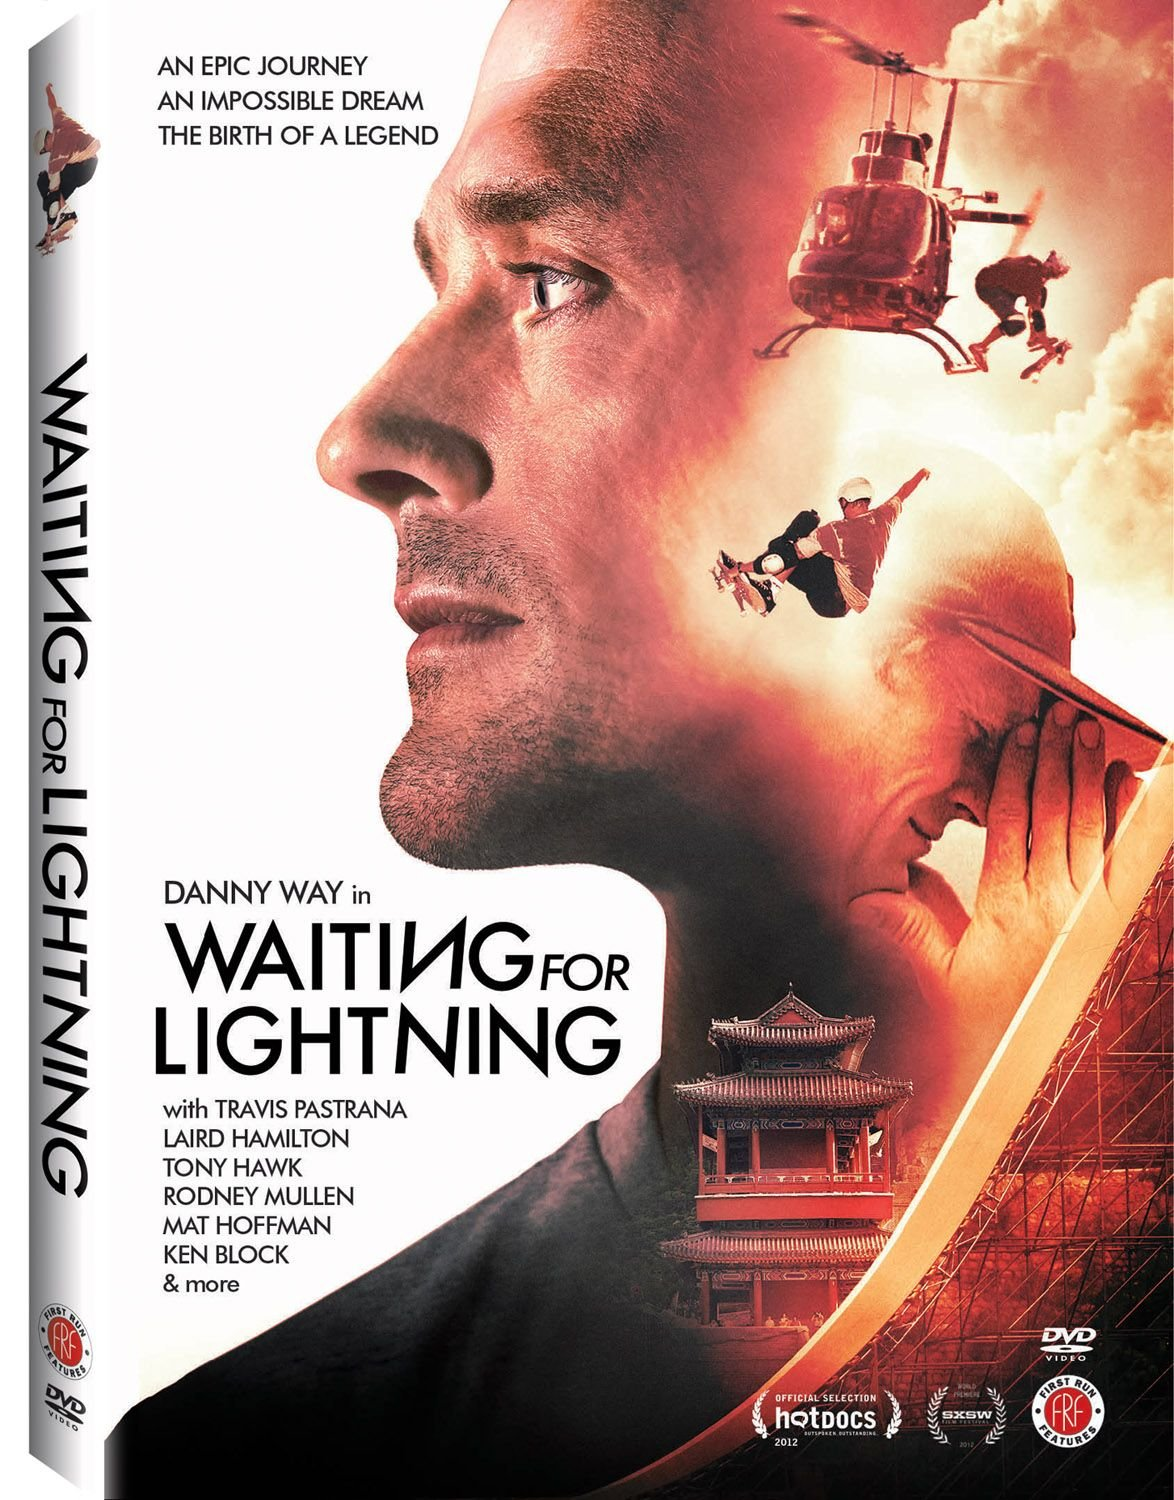 Documental de skate waiting for lightning